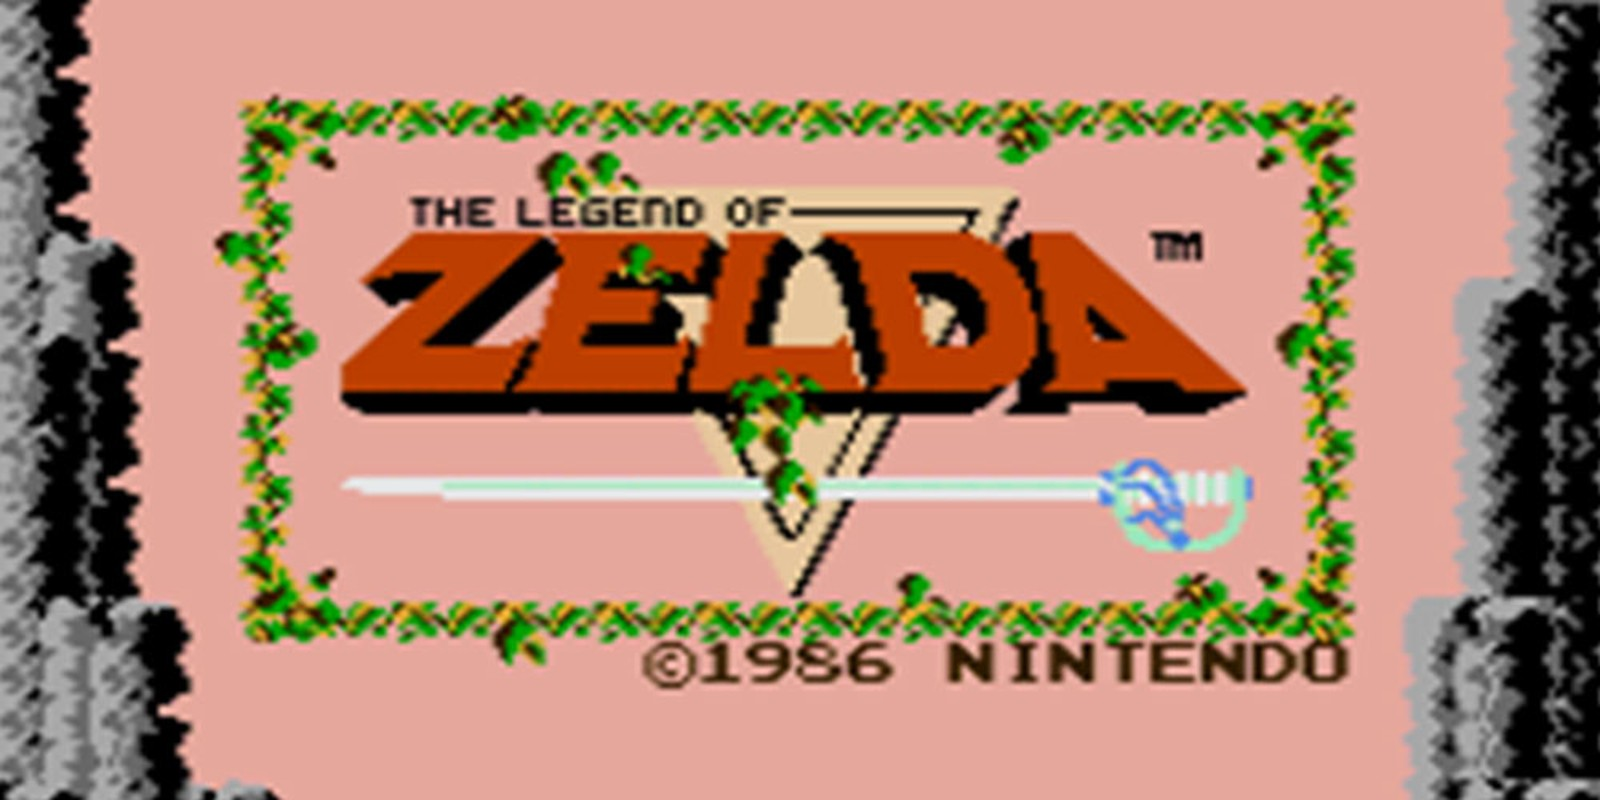 The Legend Of Zelda Nes Games Nintendo